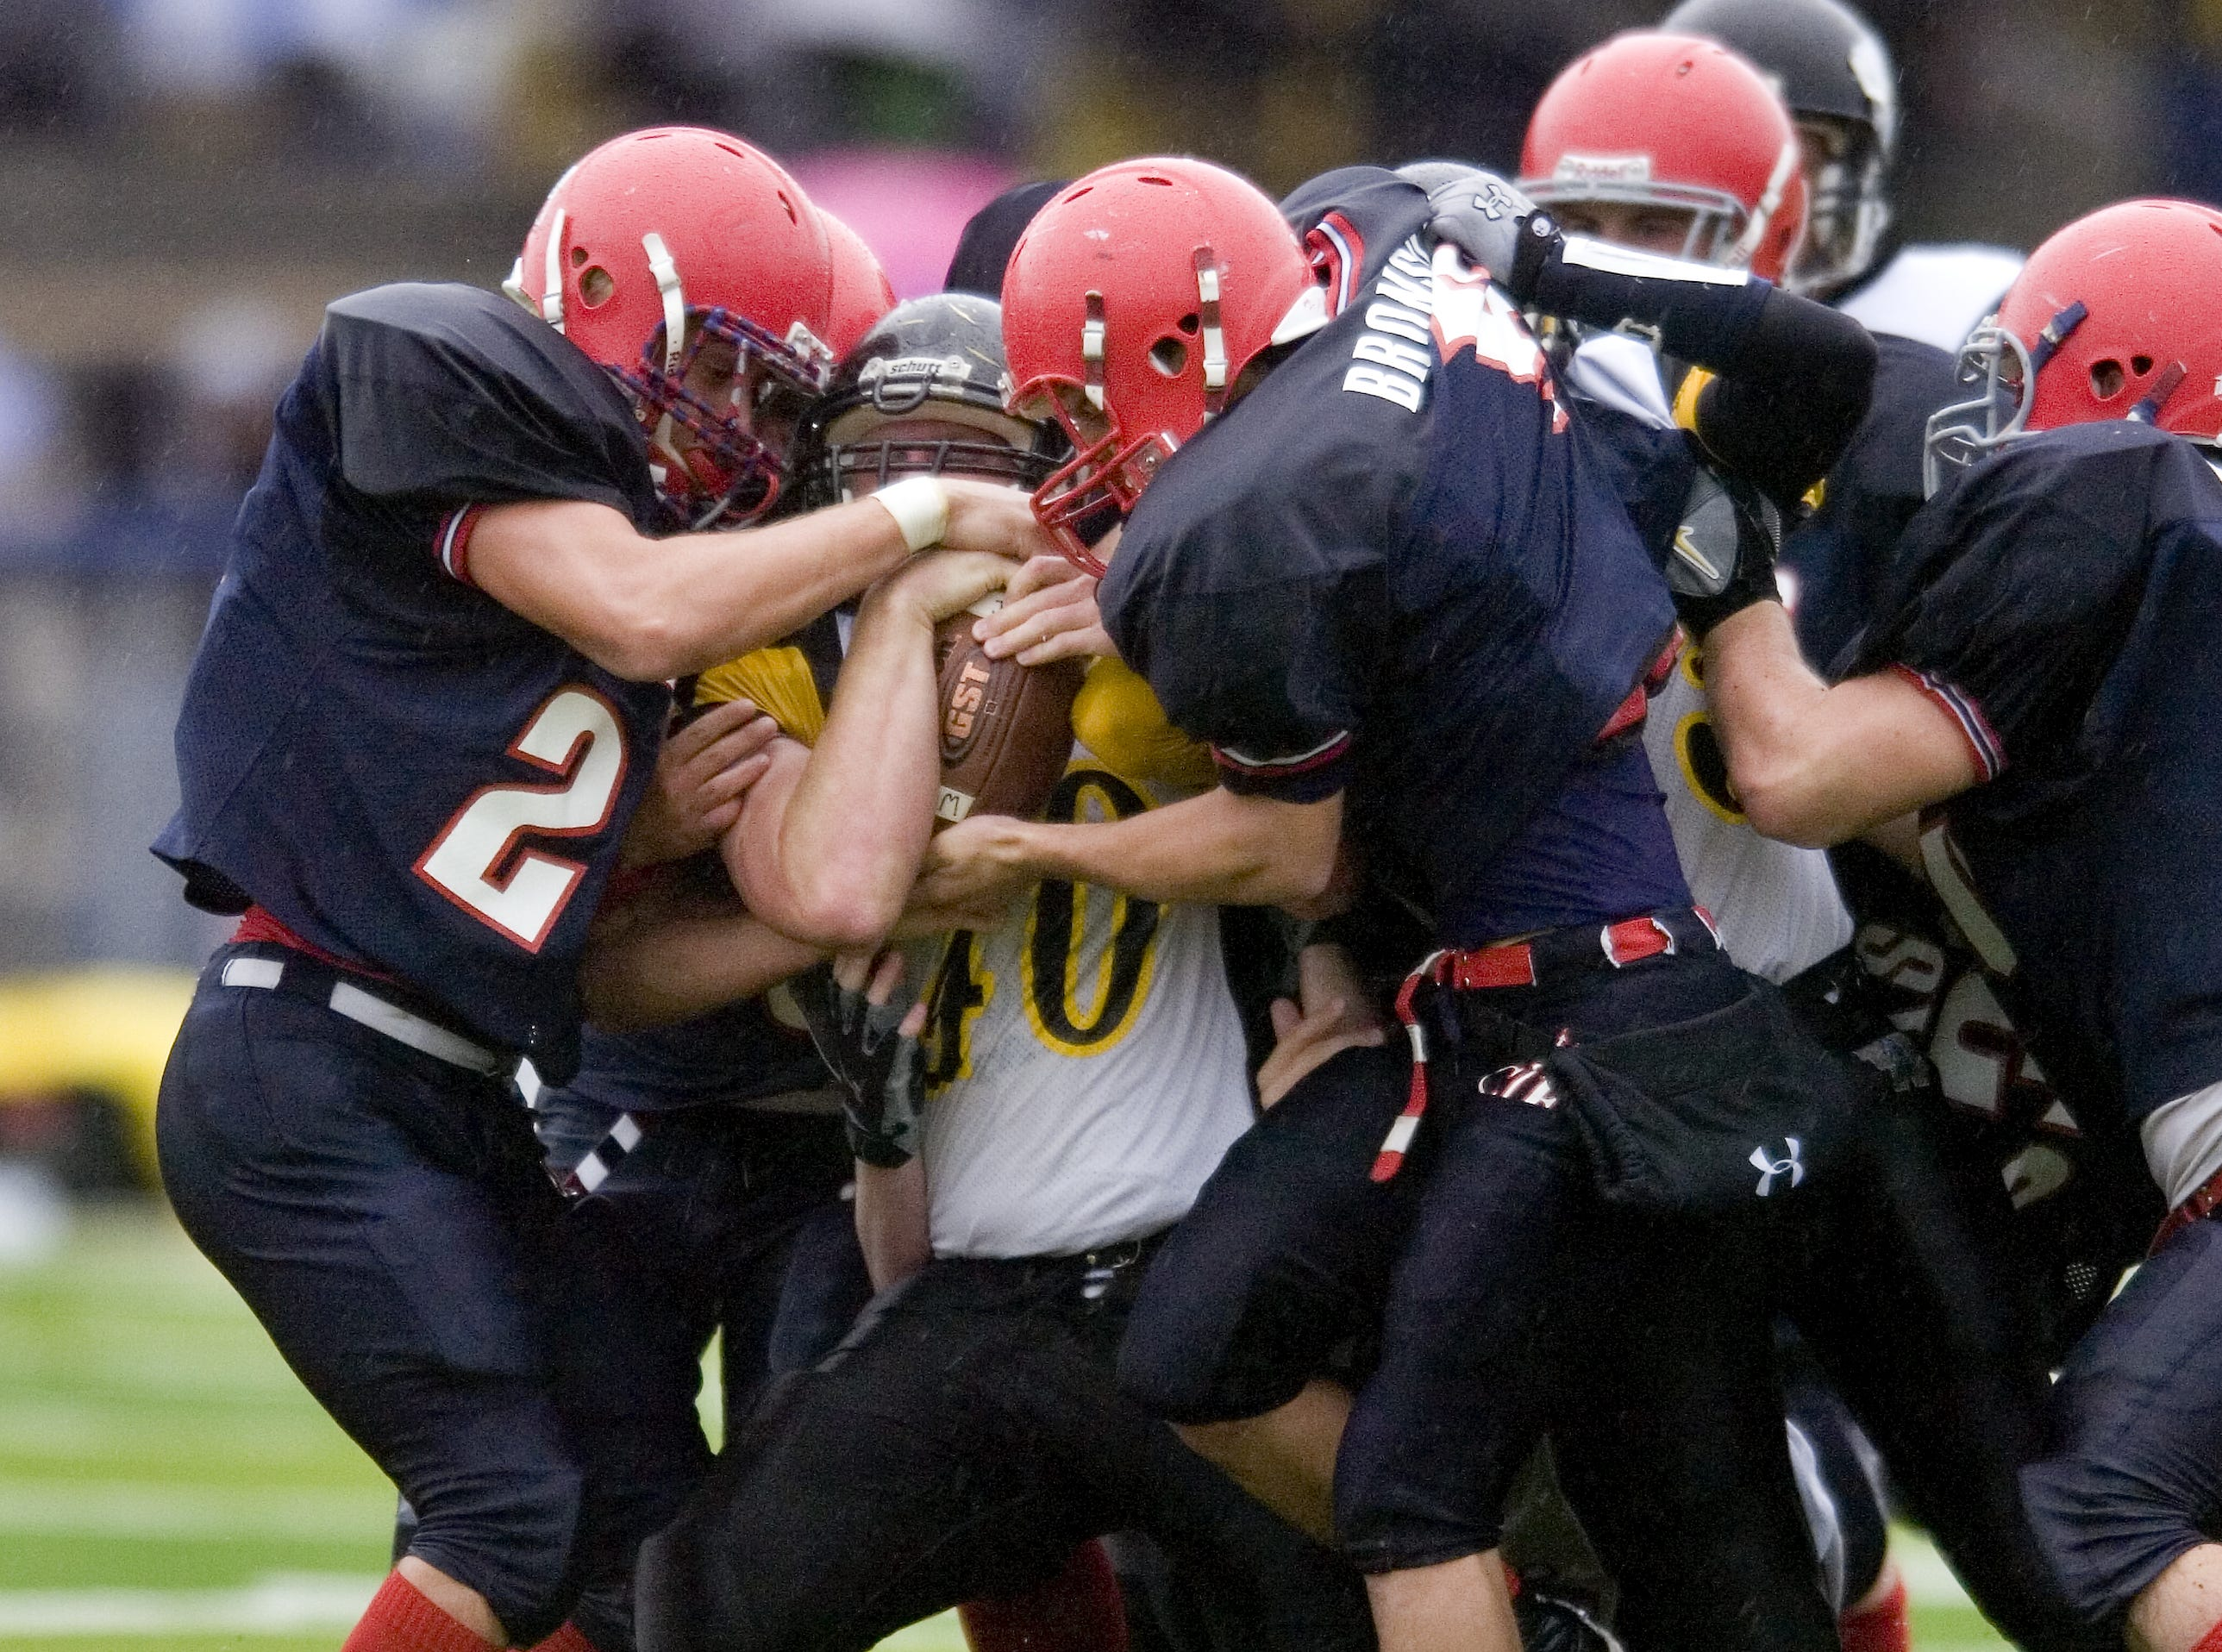 From 2008: Windsor's  Noah Sibley is overwhelmed by Chenango Forks's  defense during the 2nd half of their game Saturday at Chenango Forks. Chenango Forks won 8-0.